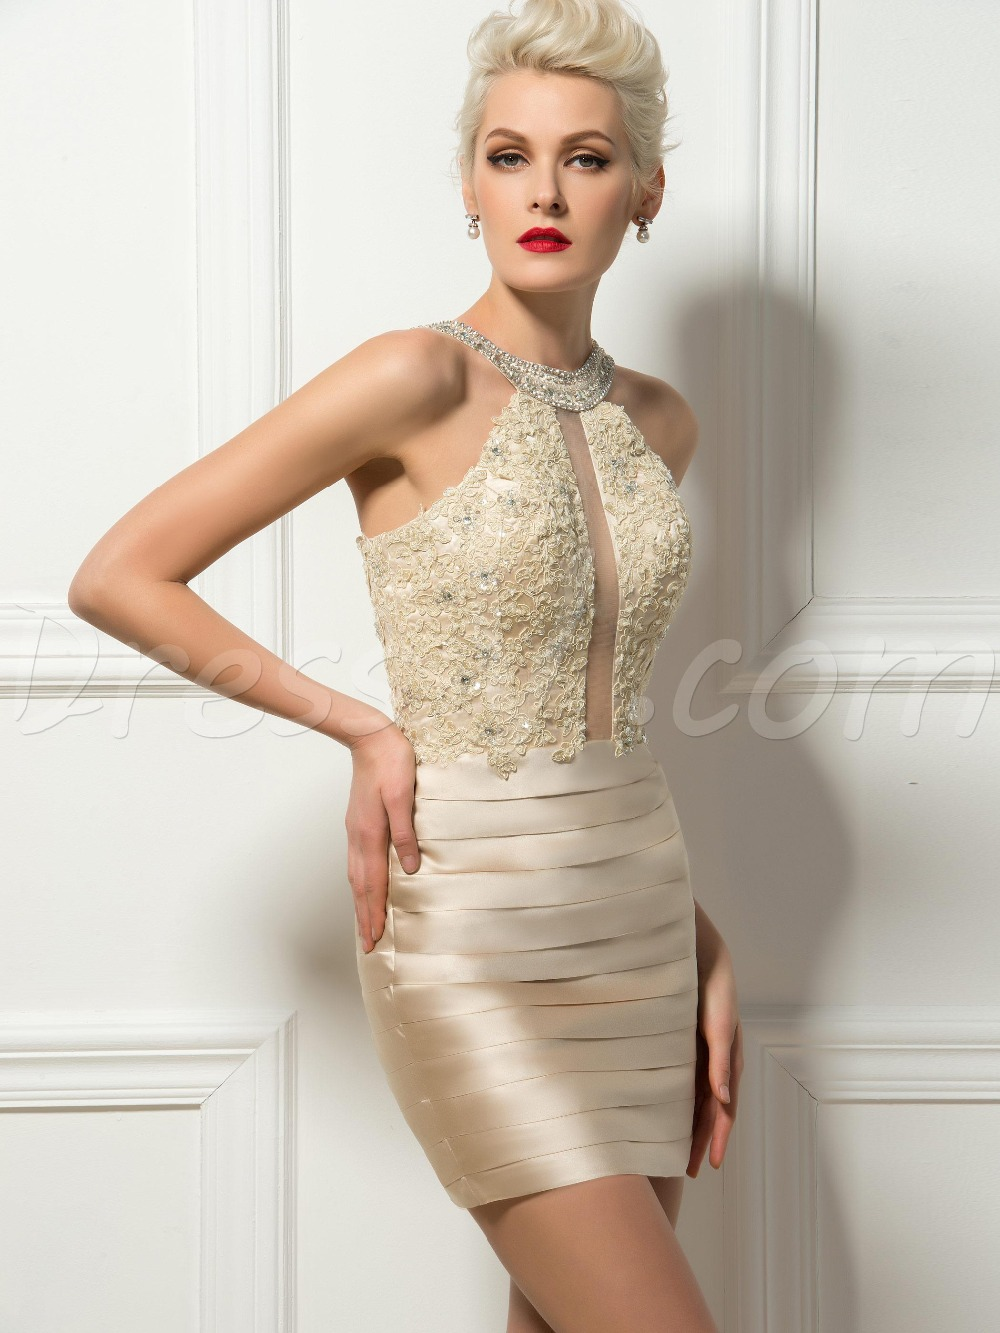 Sexy Bodycon Short Mini Champagne Cocktail Dresses Sheath Pleated Appliques  Beaded Halter Short Party Dress Homecoming Dresses-in Cocktail Dresses from  ... c4be4ff4fd5a